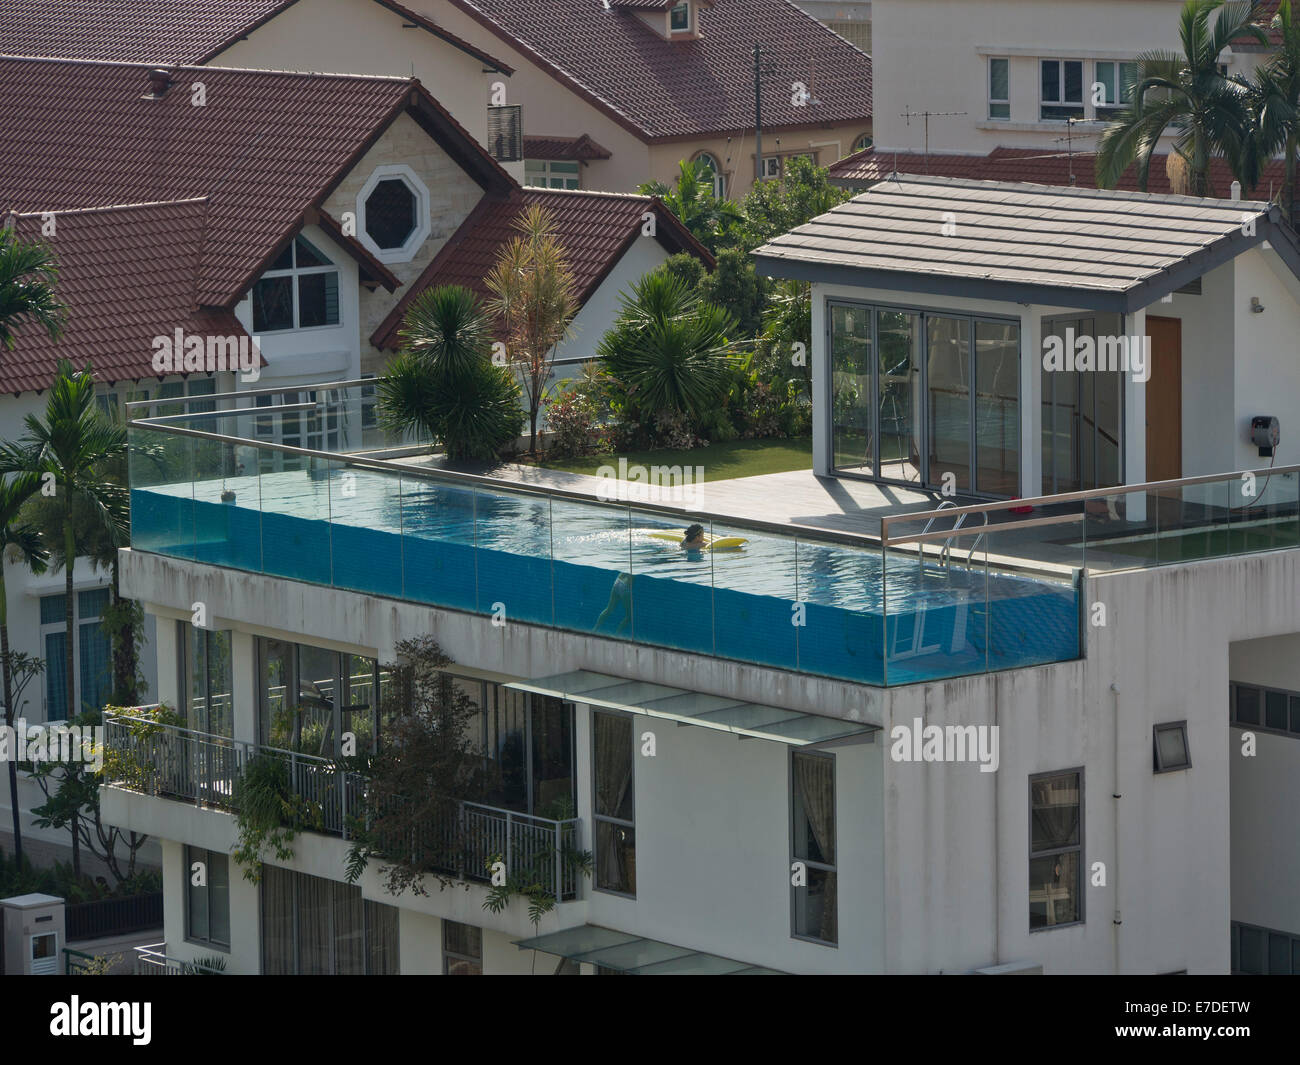 Swimming Pool At A Luxury House In Singapore Stock Photo Royalty Free Image 73441113 Alamy